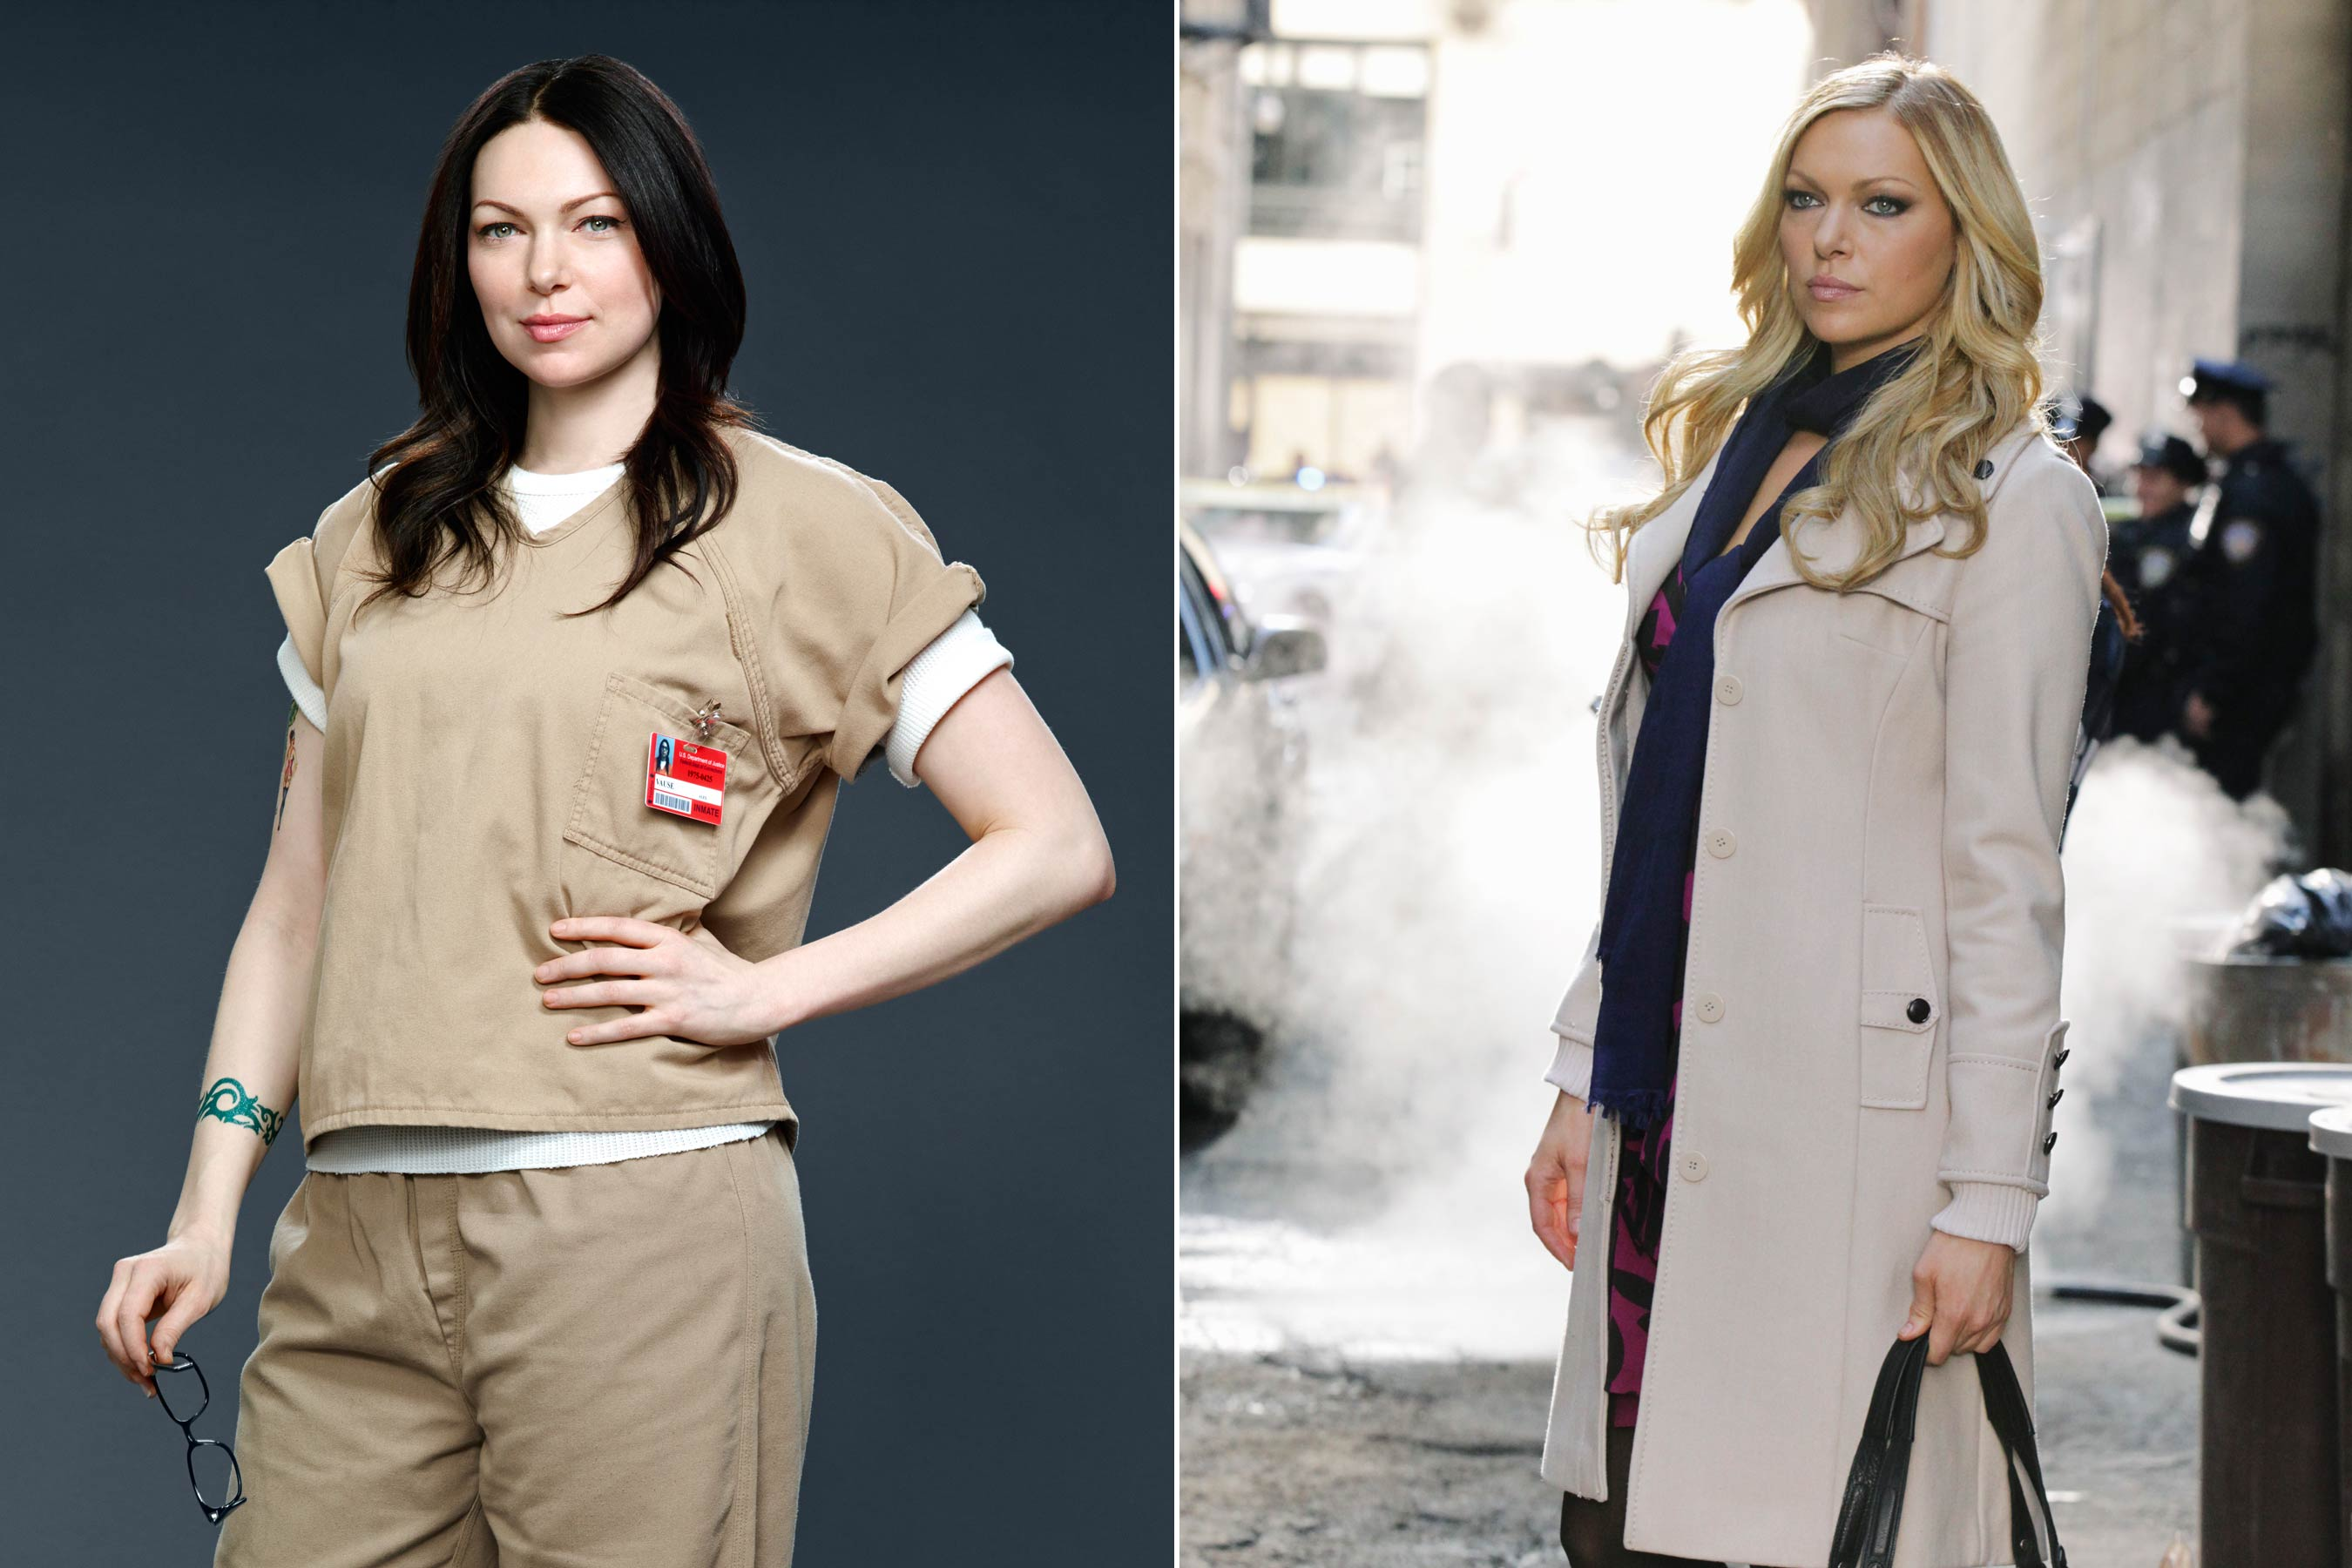 Before Laura Prepon played Alex Vause on <i>Orange Is the New Black</i> she guest starred as Natalie Rhodes on <i>Castle</i>.